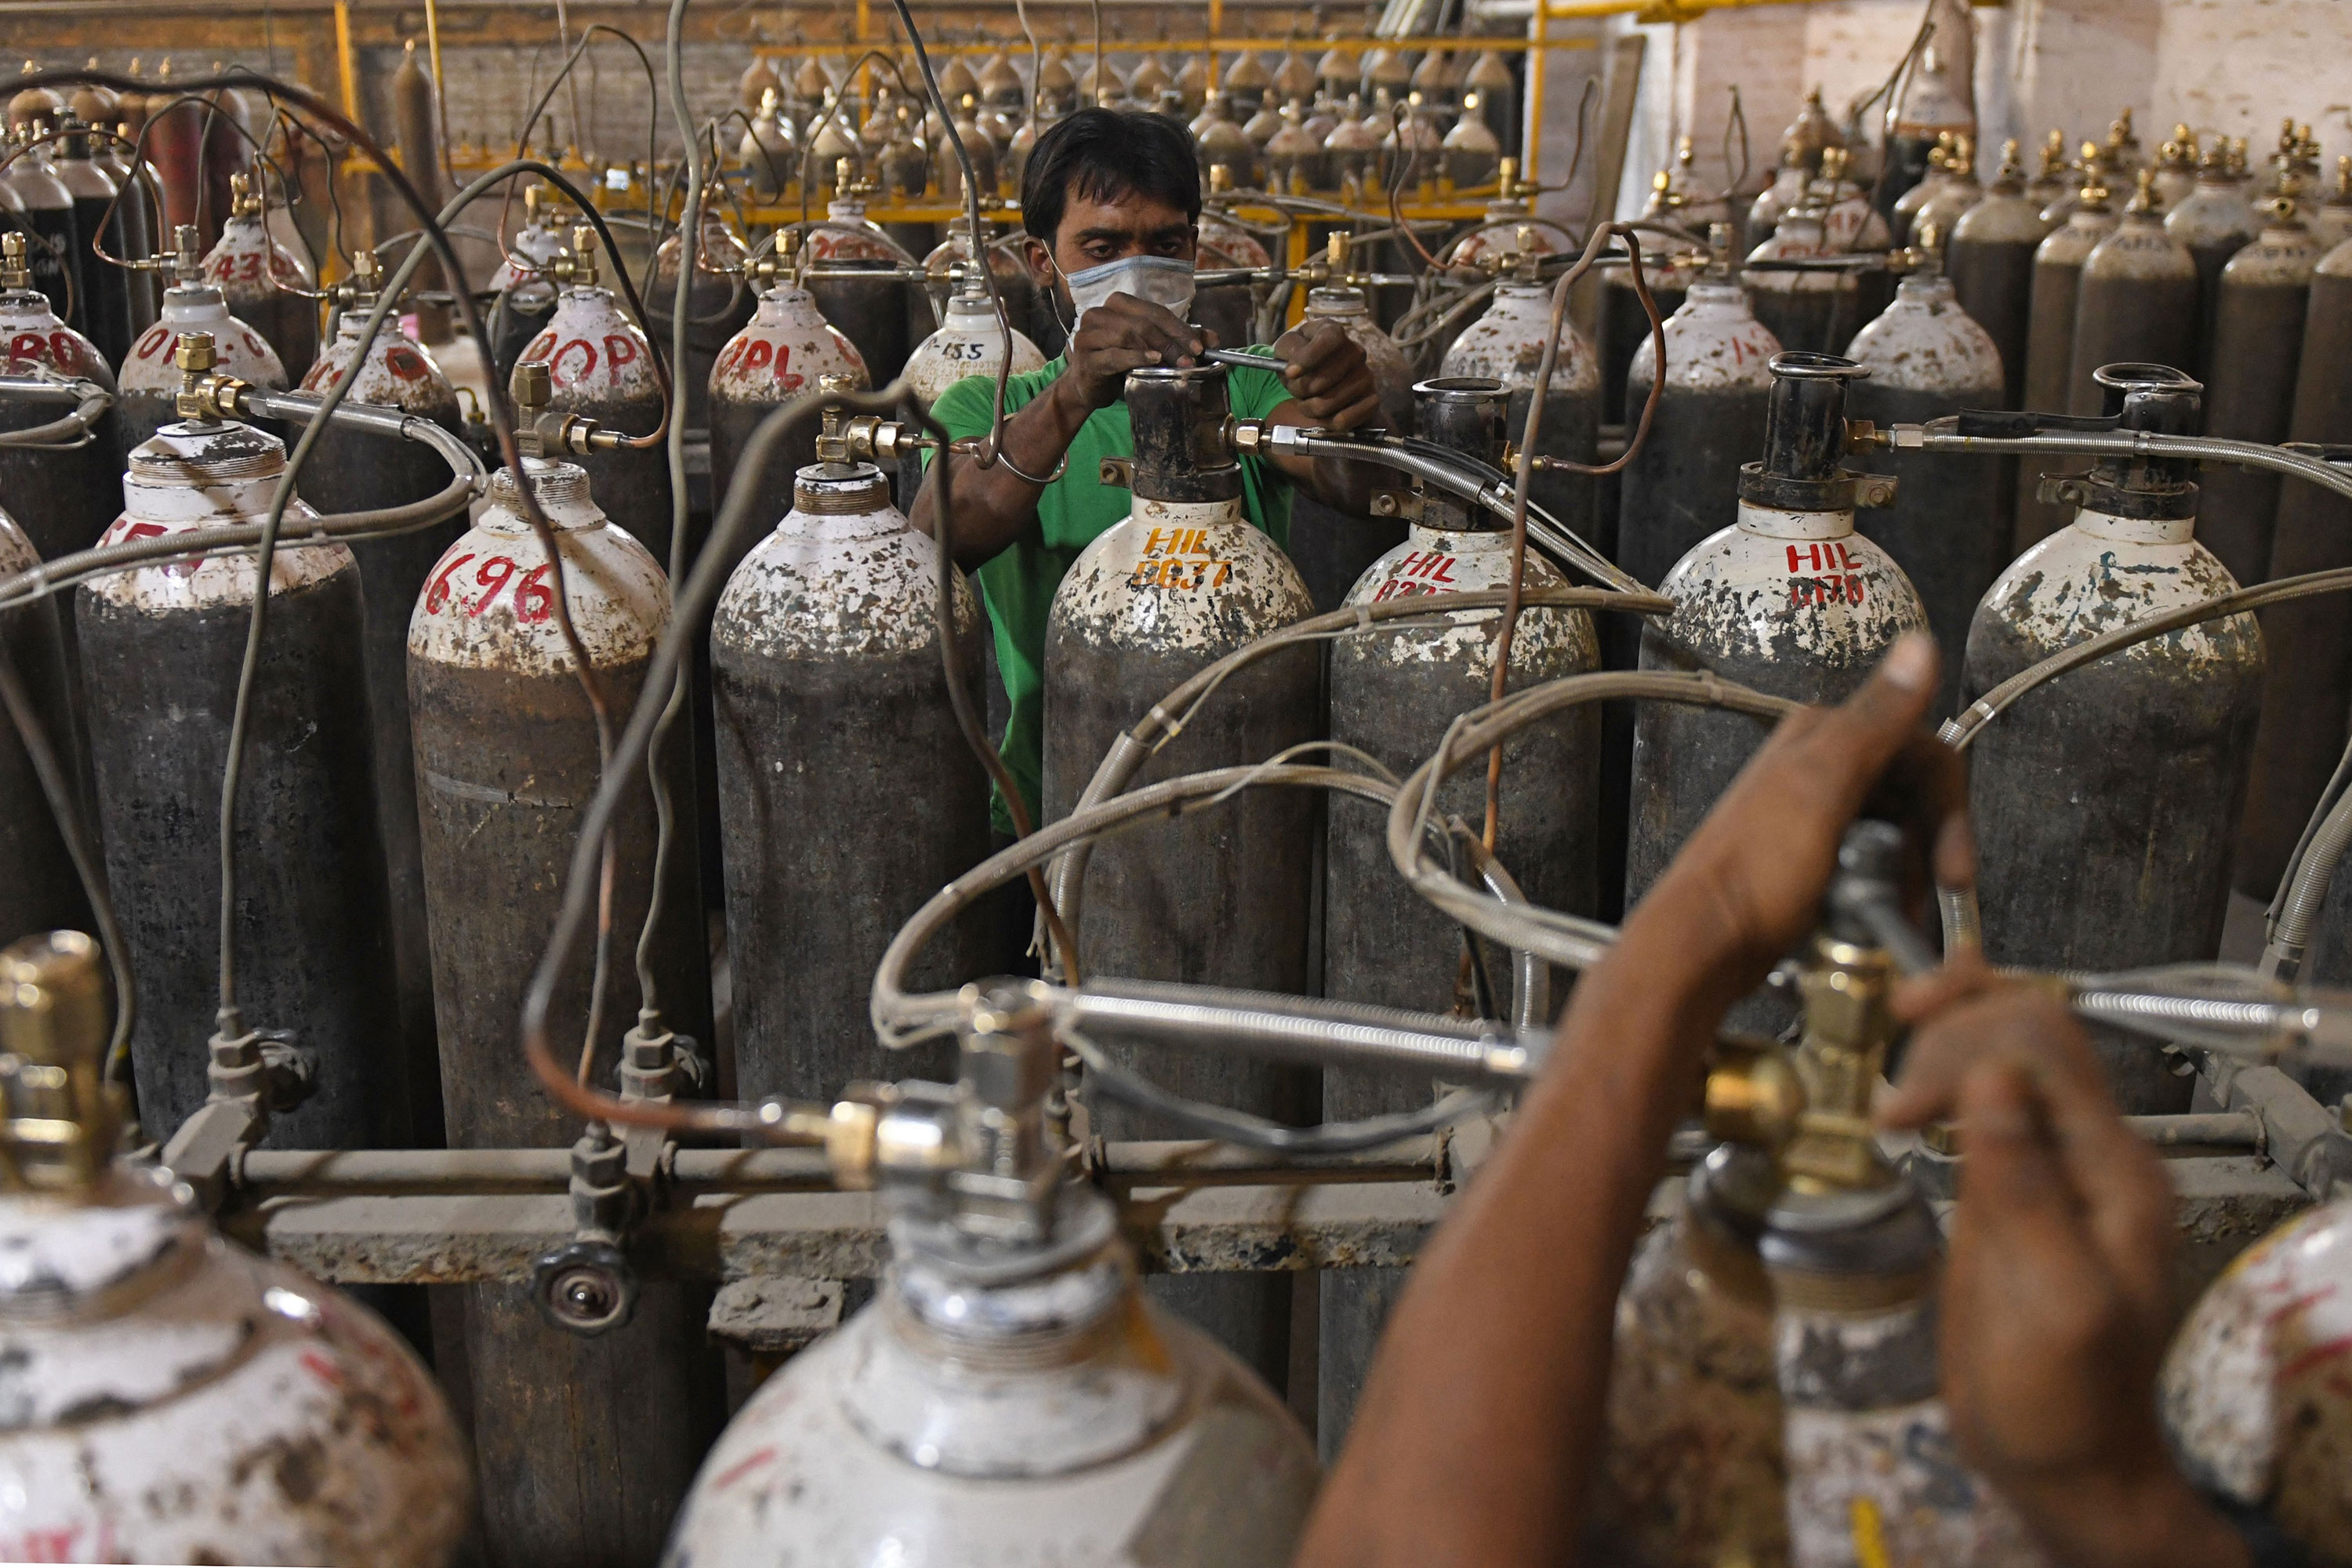 Workers sort oxygen containers at a facility on the outskirts of Amritsar, India, before dispatching them to hospitals on April 28.